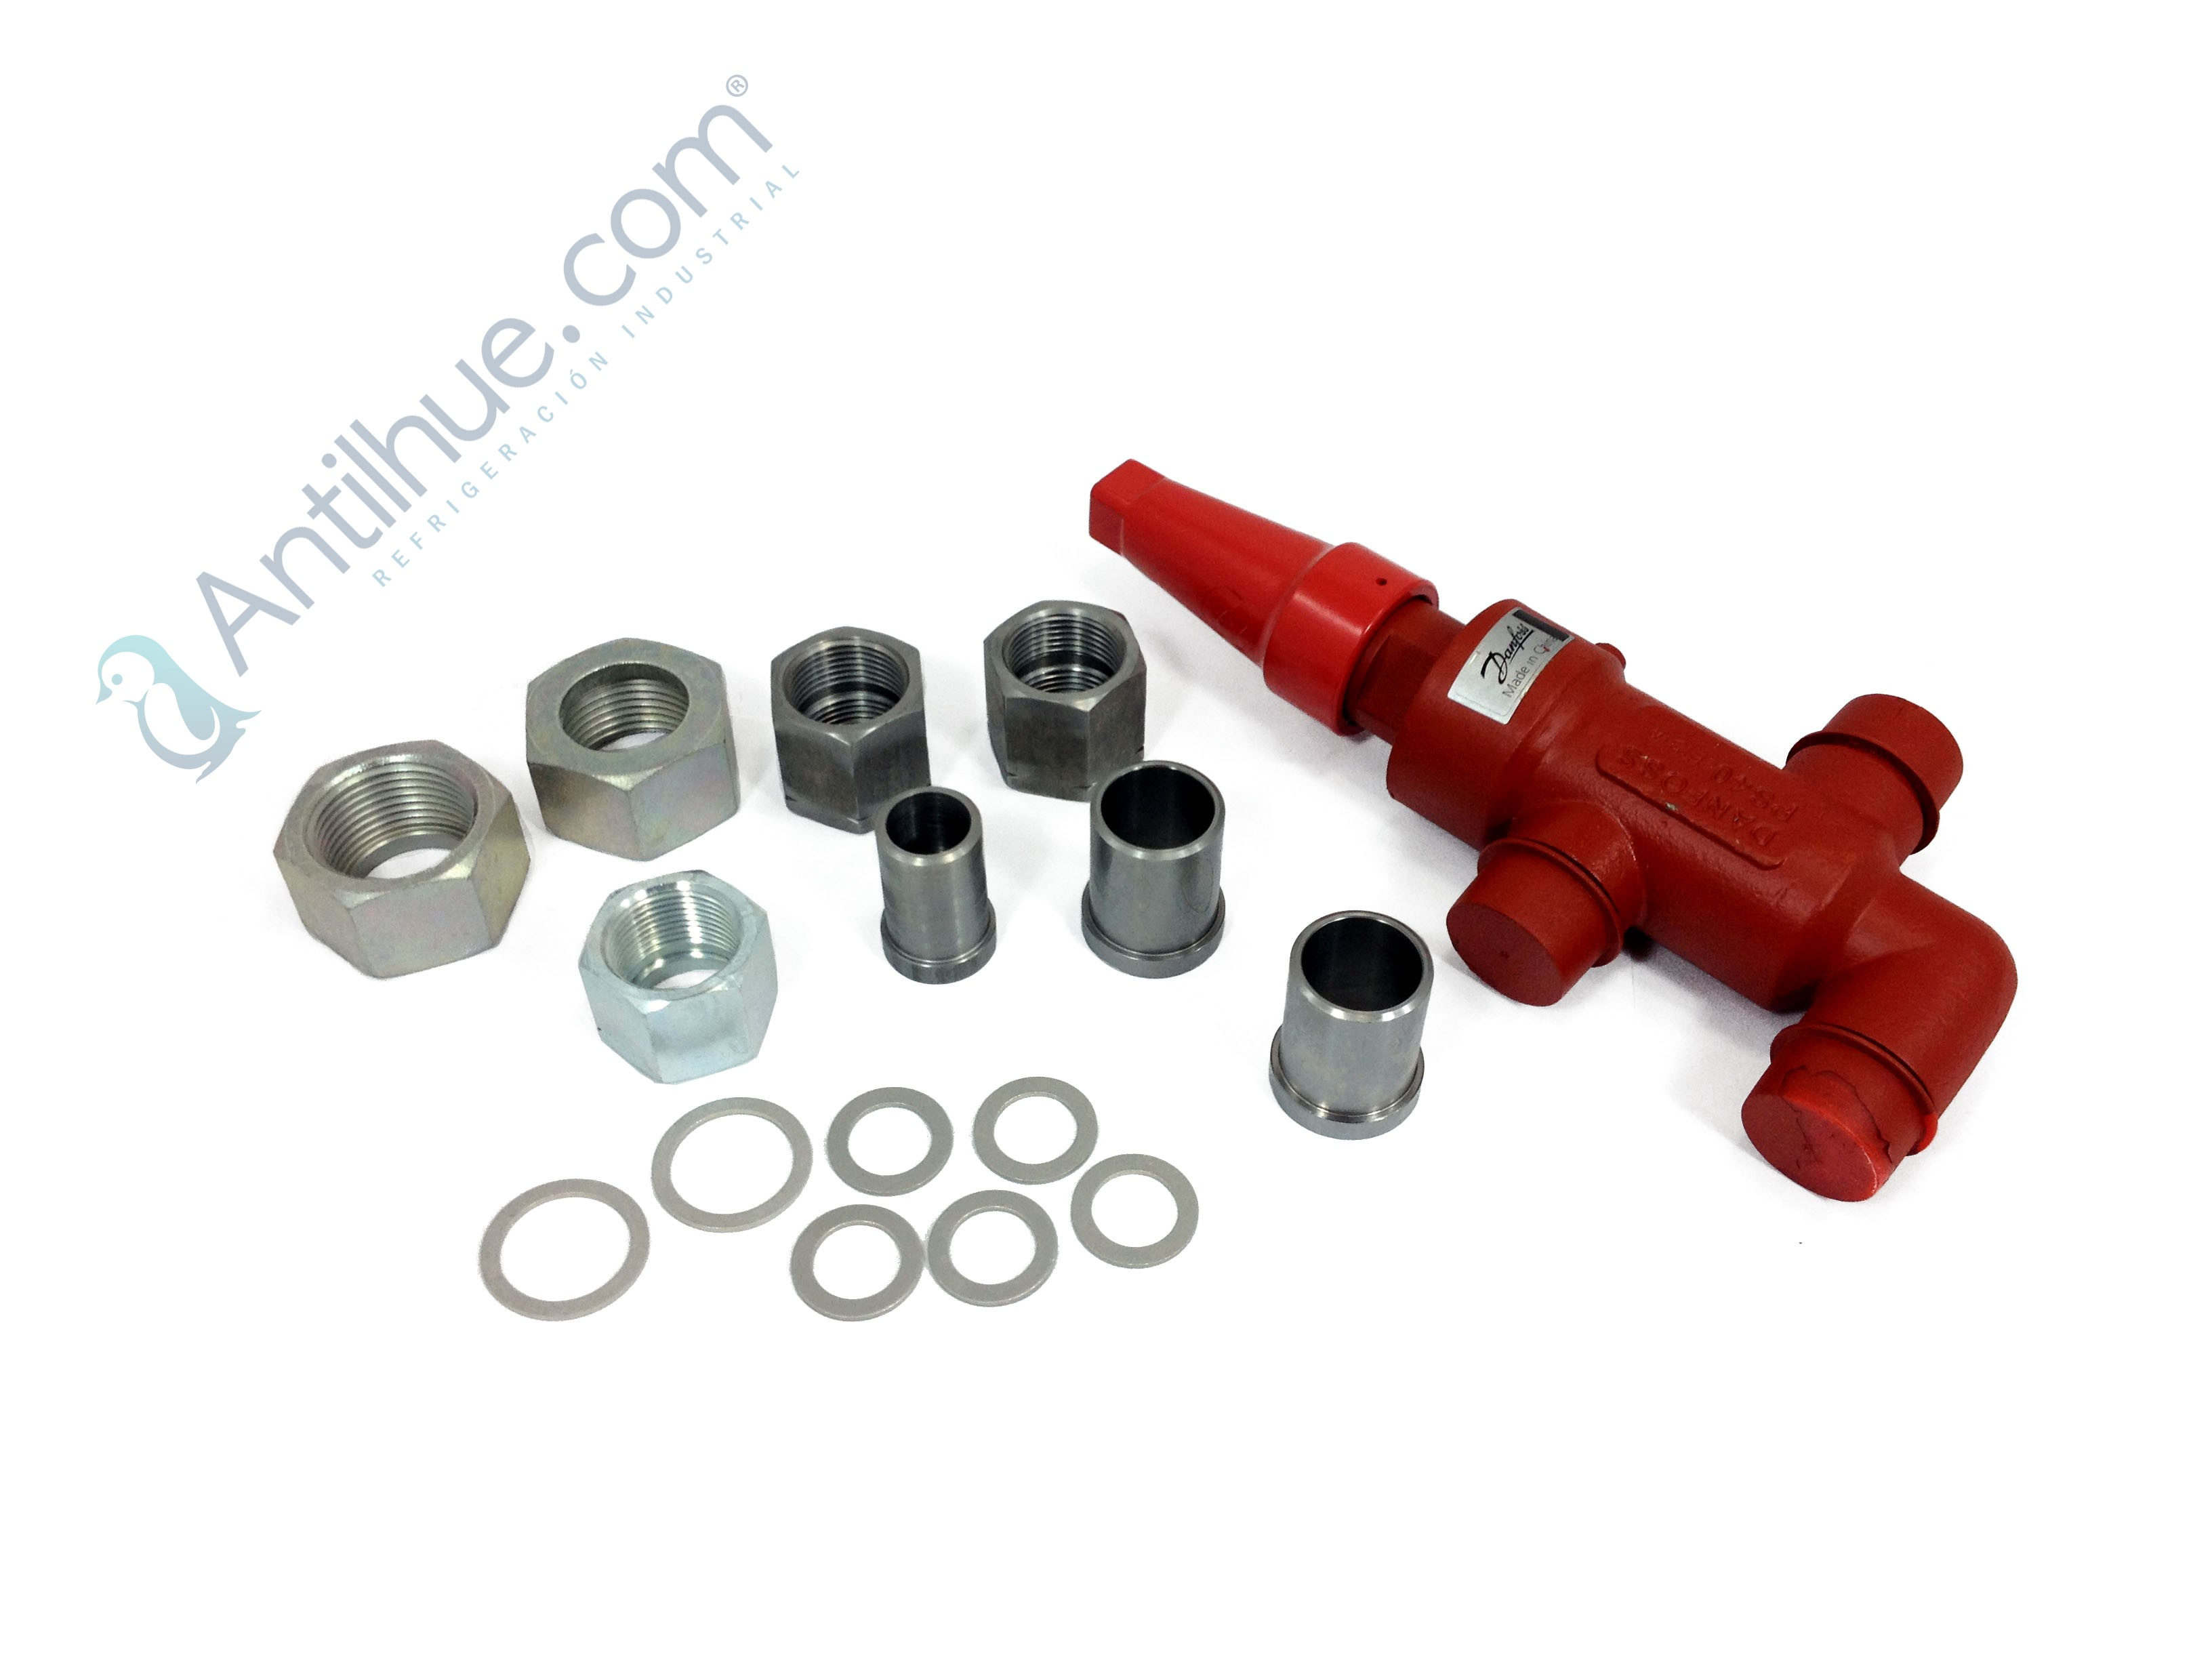 Valve,Dir Cont,3 Way,Orb Ports Buyers Products HV13AGOOD0 Directional Control Valve